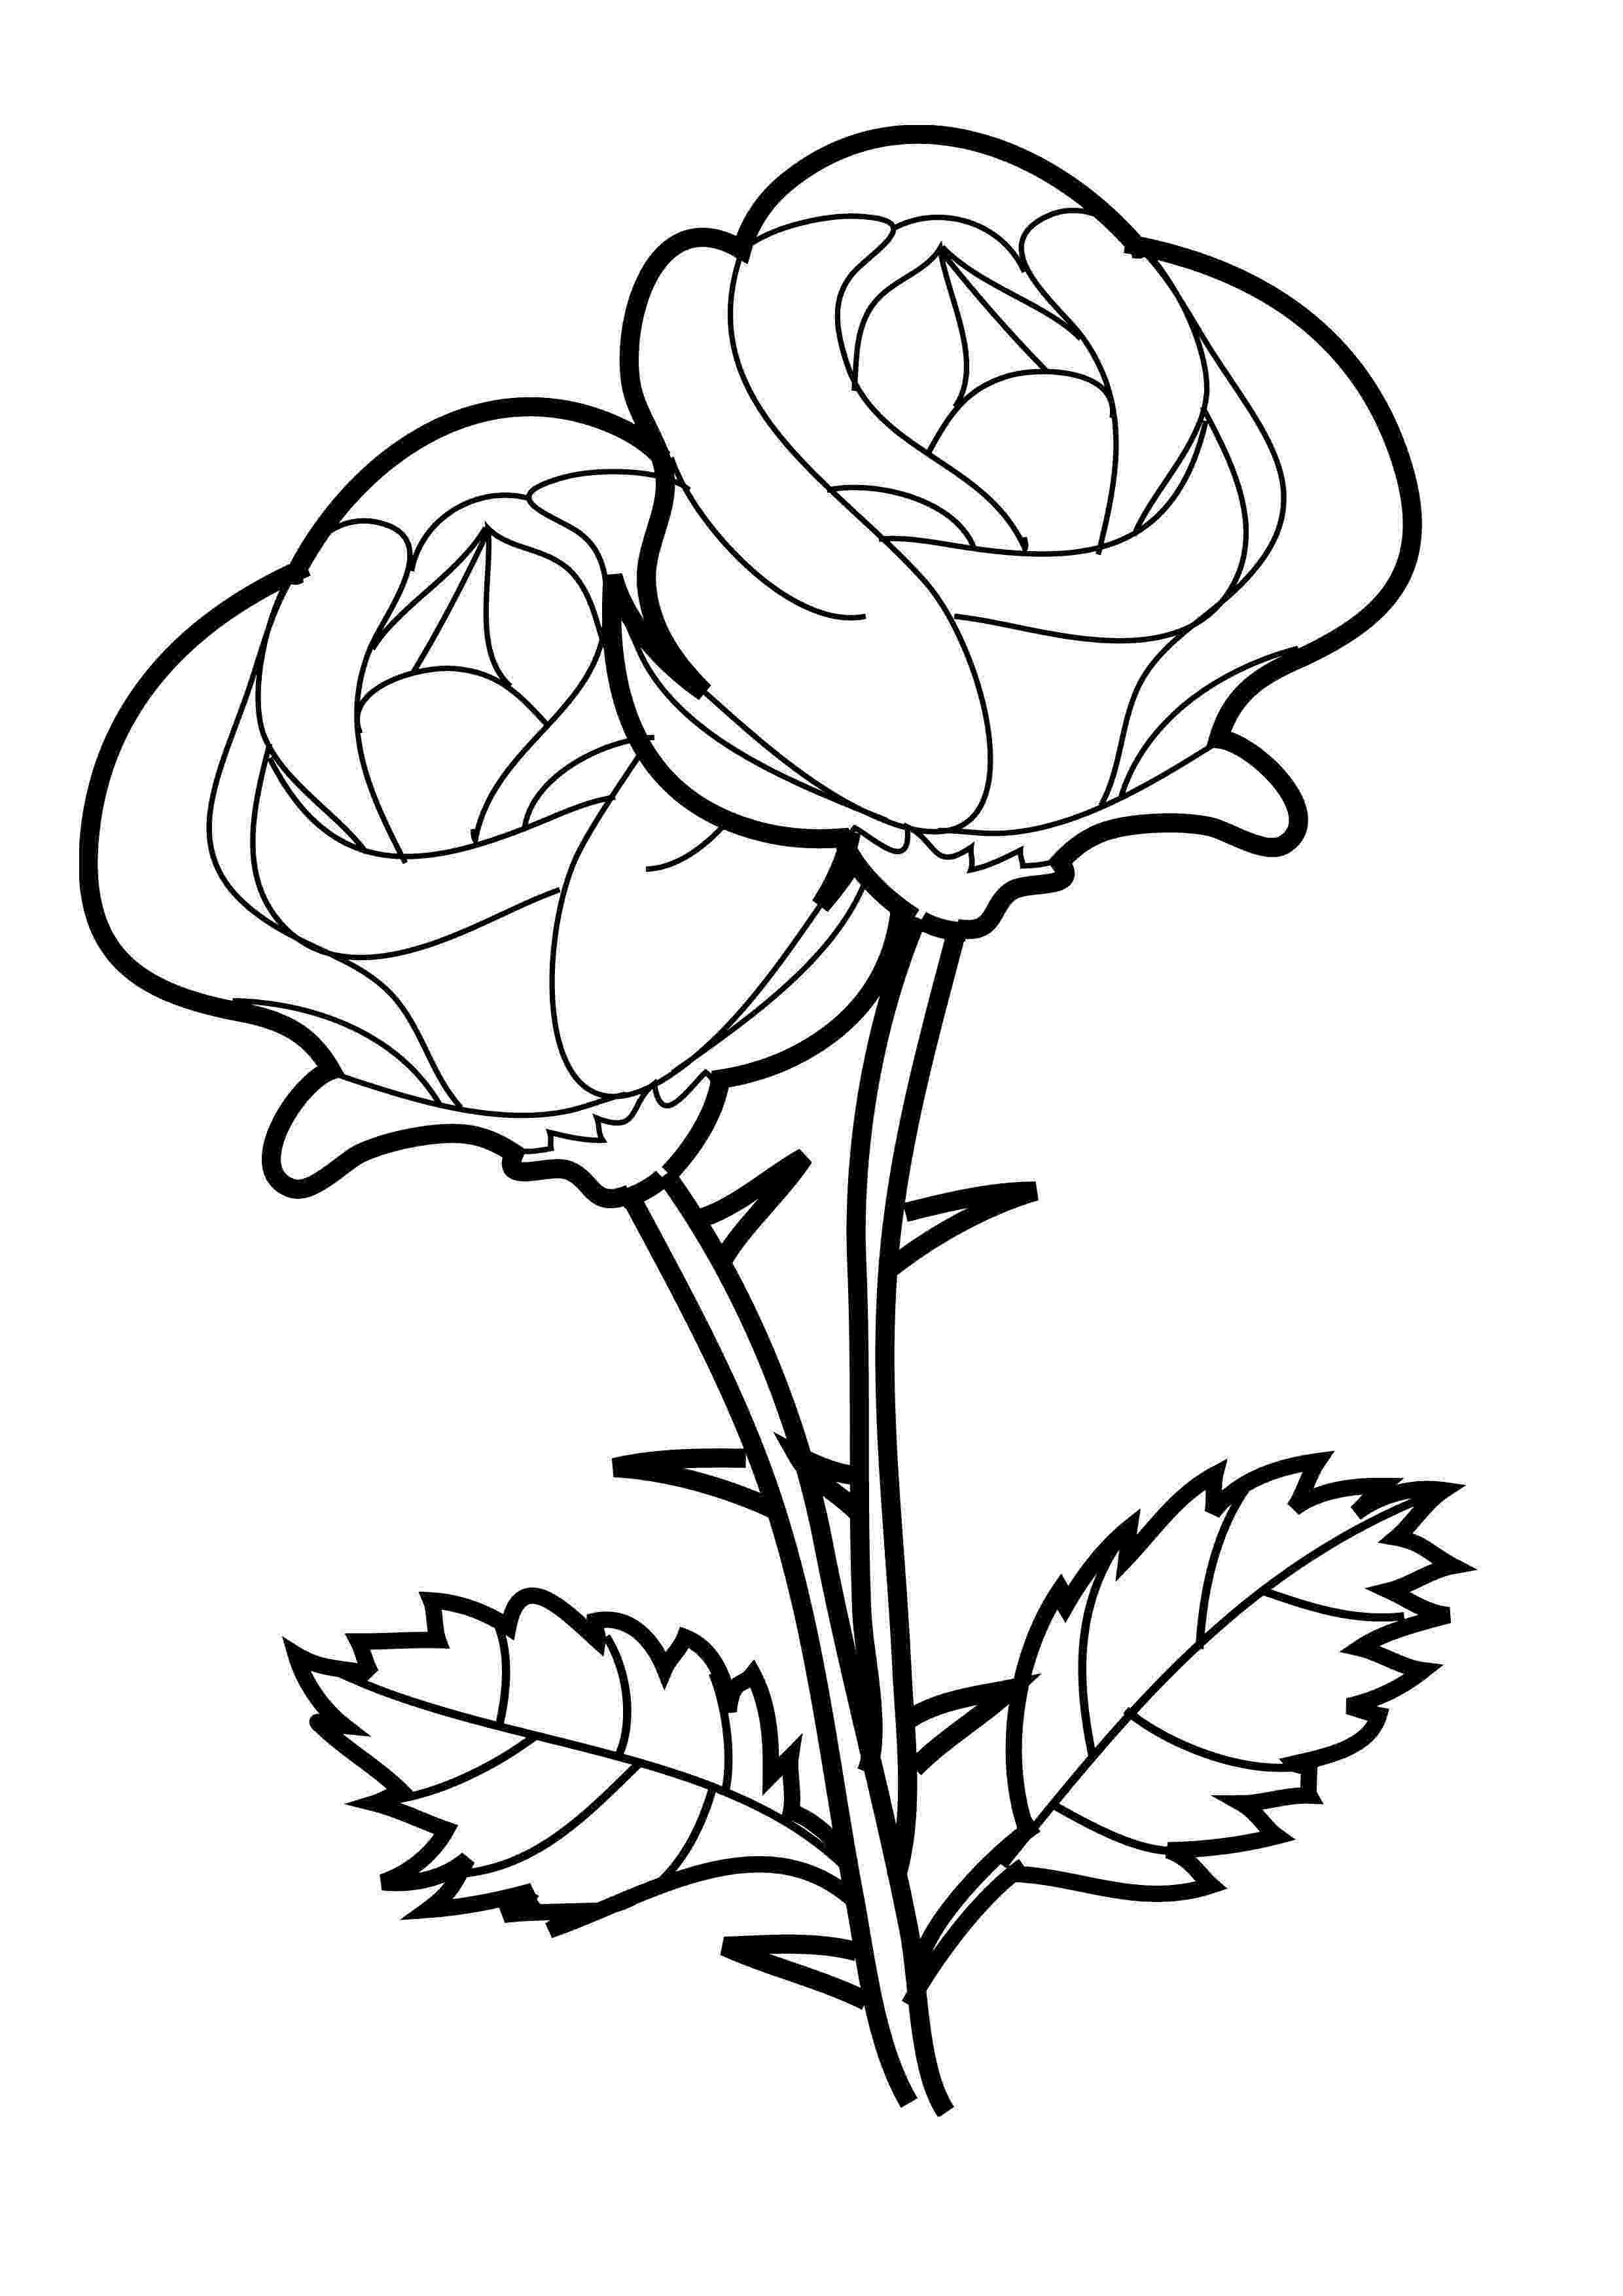 roses for coloring roses flowers coloring page free printable coloring pages coloring for roses